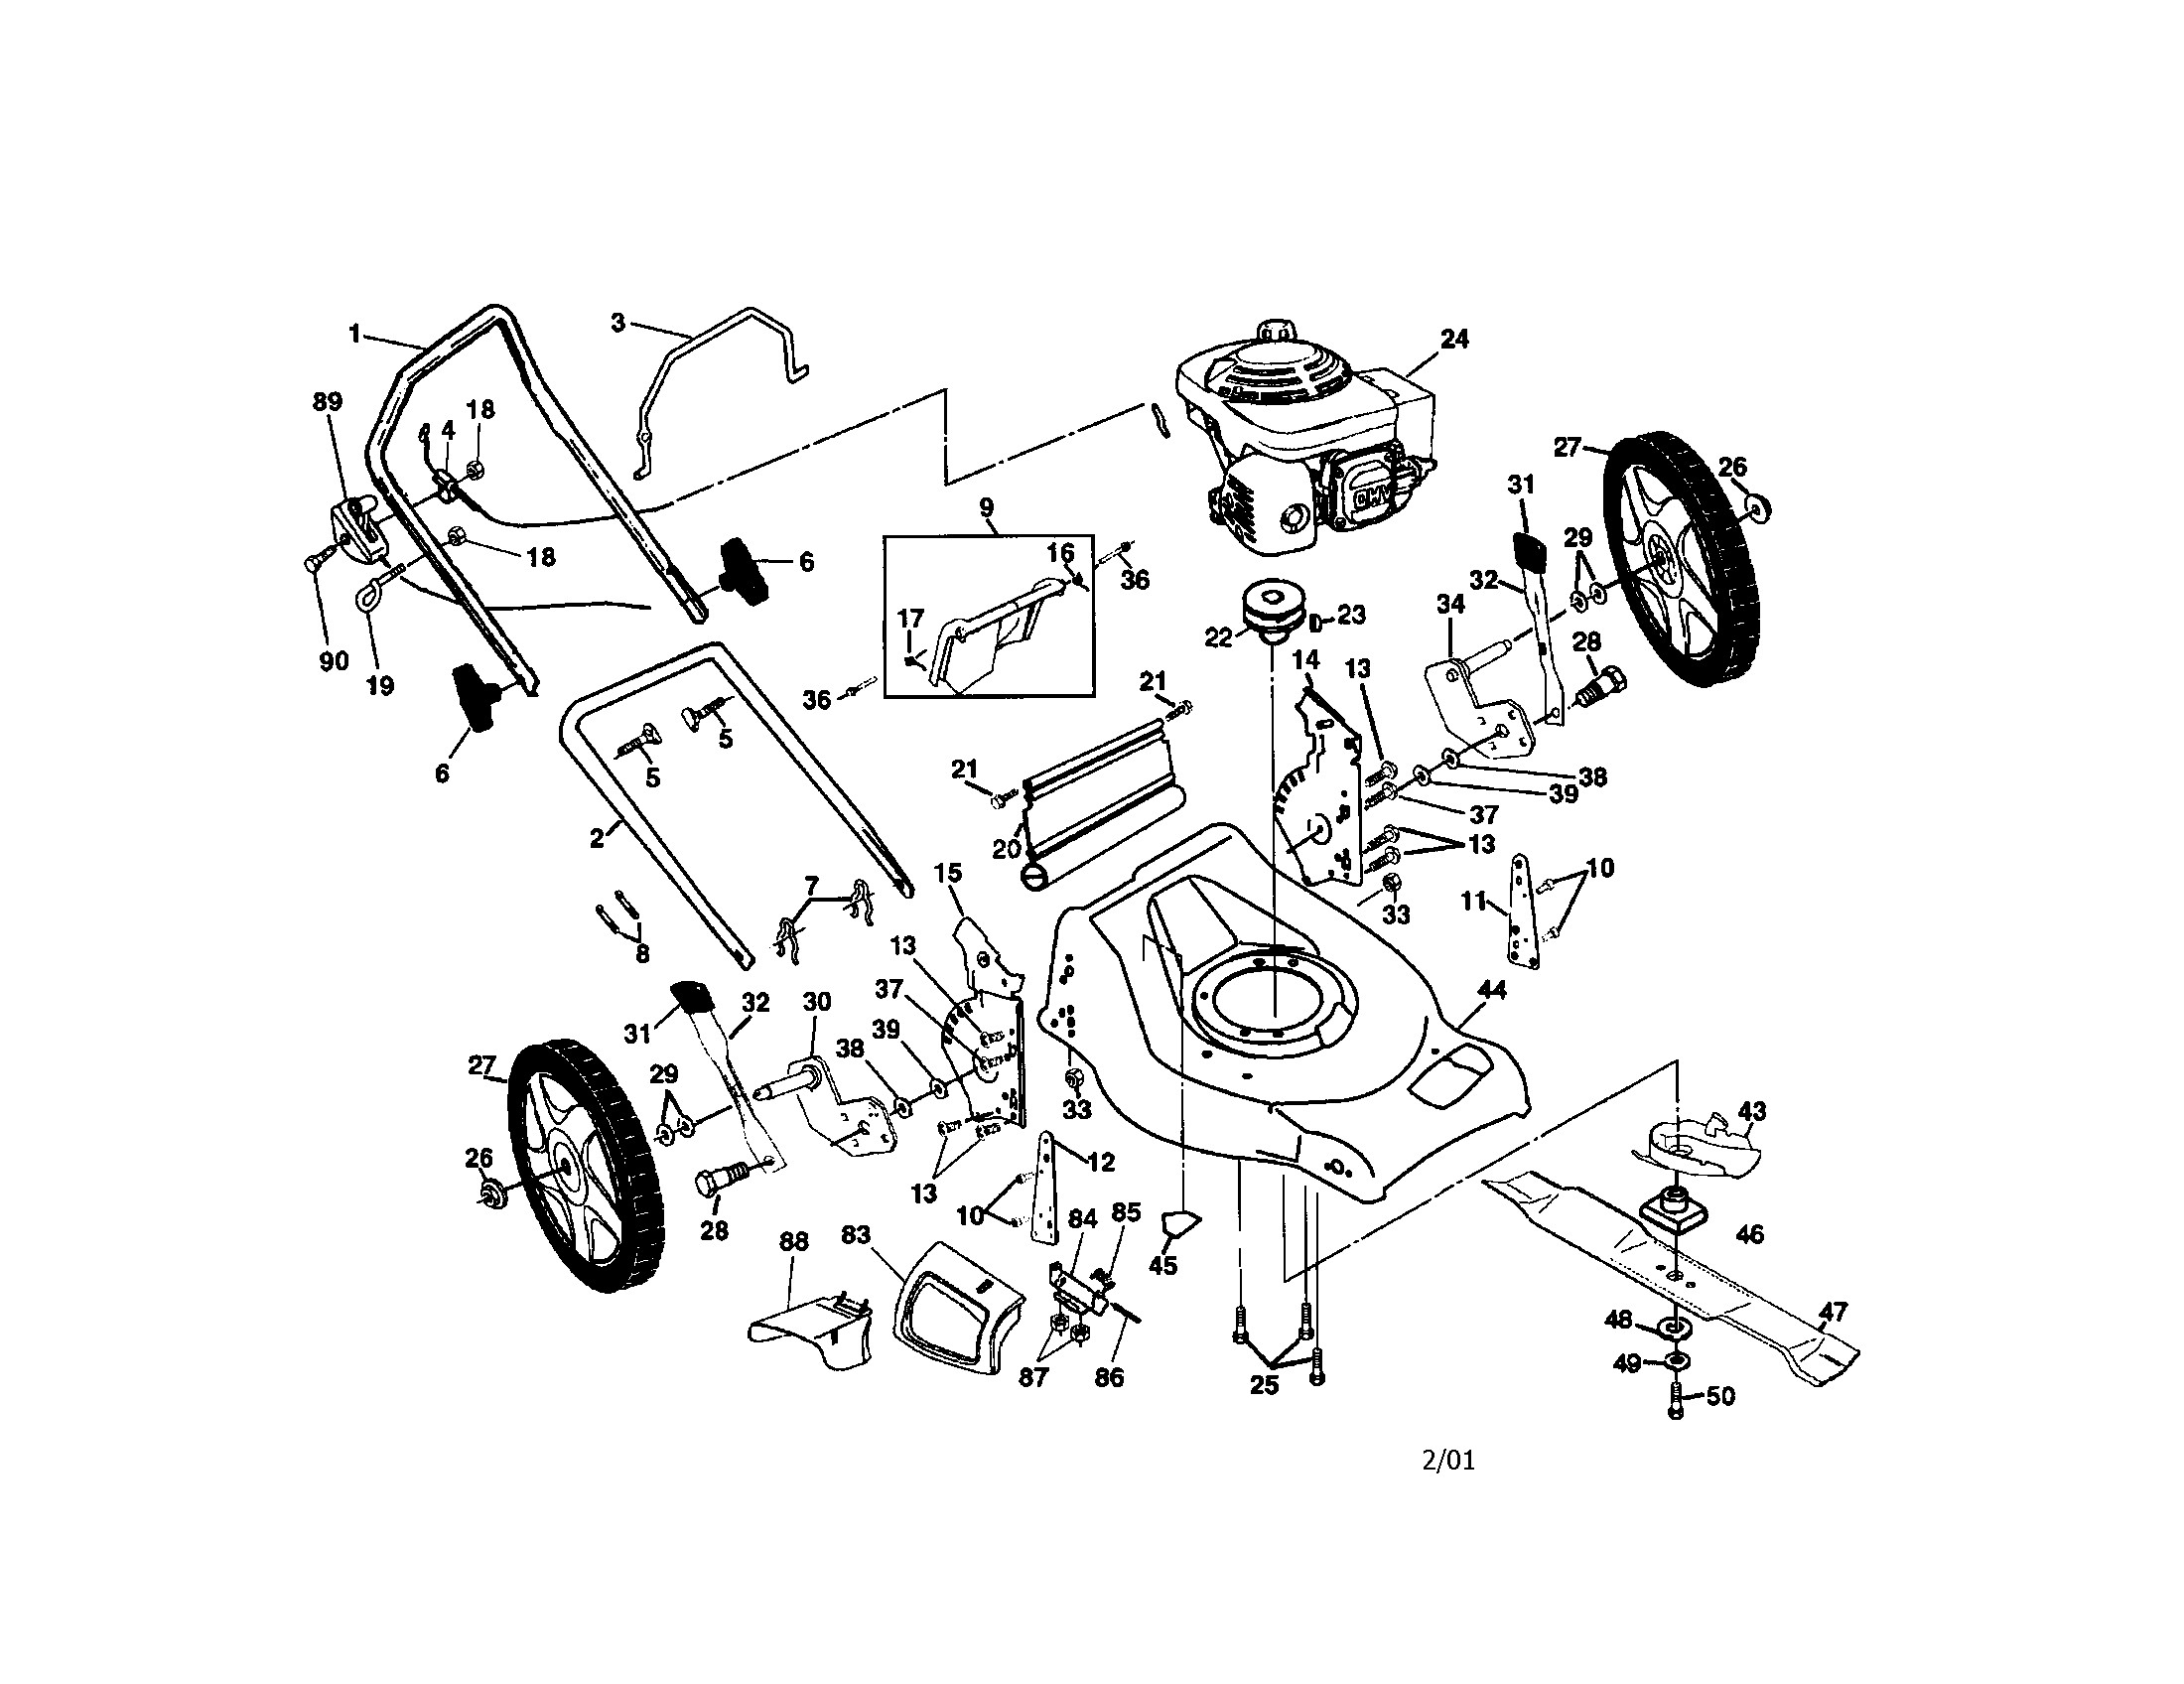 Honda Gcv160 Engine Diagram Poulan Model Pr55hy21ca Walk Behind Lawnmower Gas Genuine Parts Of Honda Gcv160 Engine Diagram